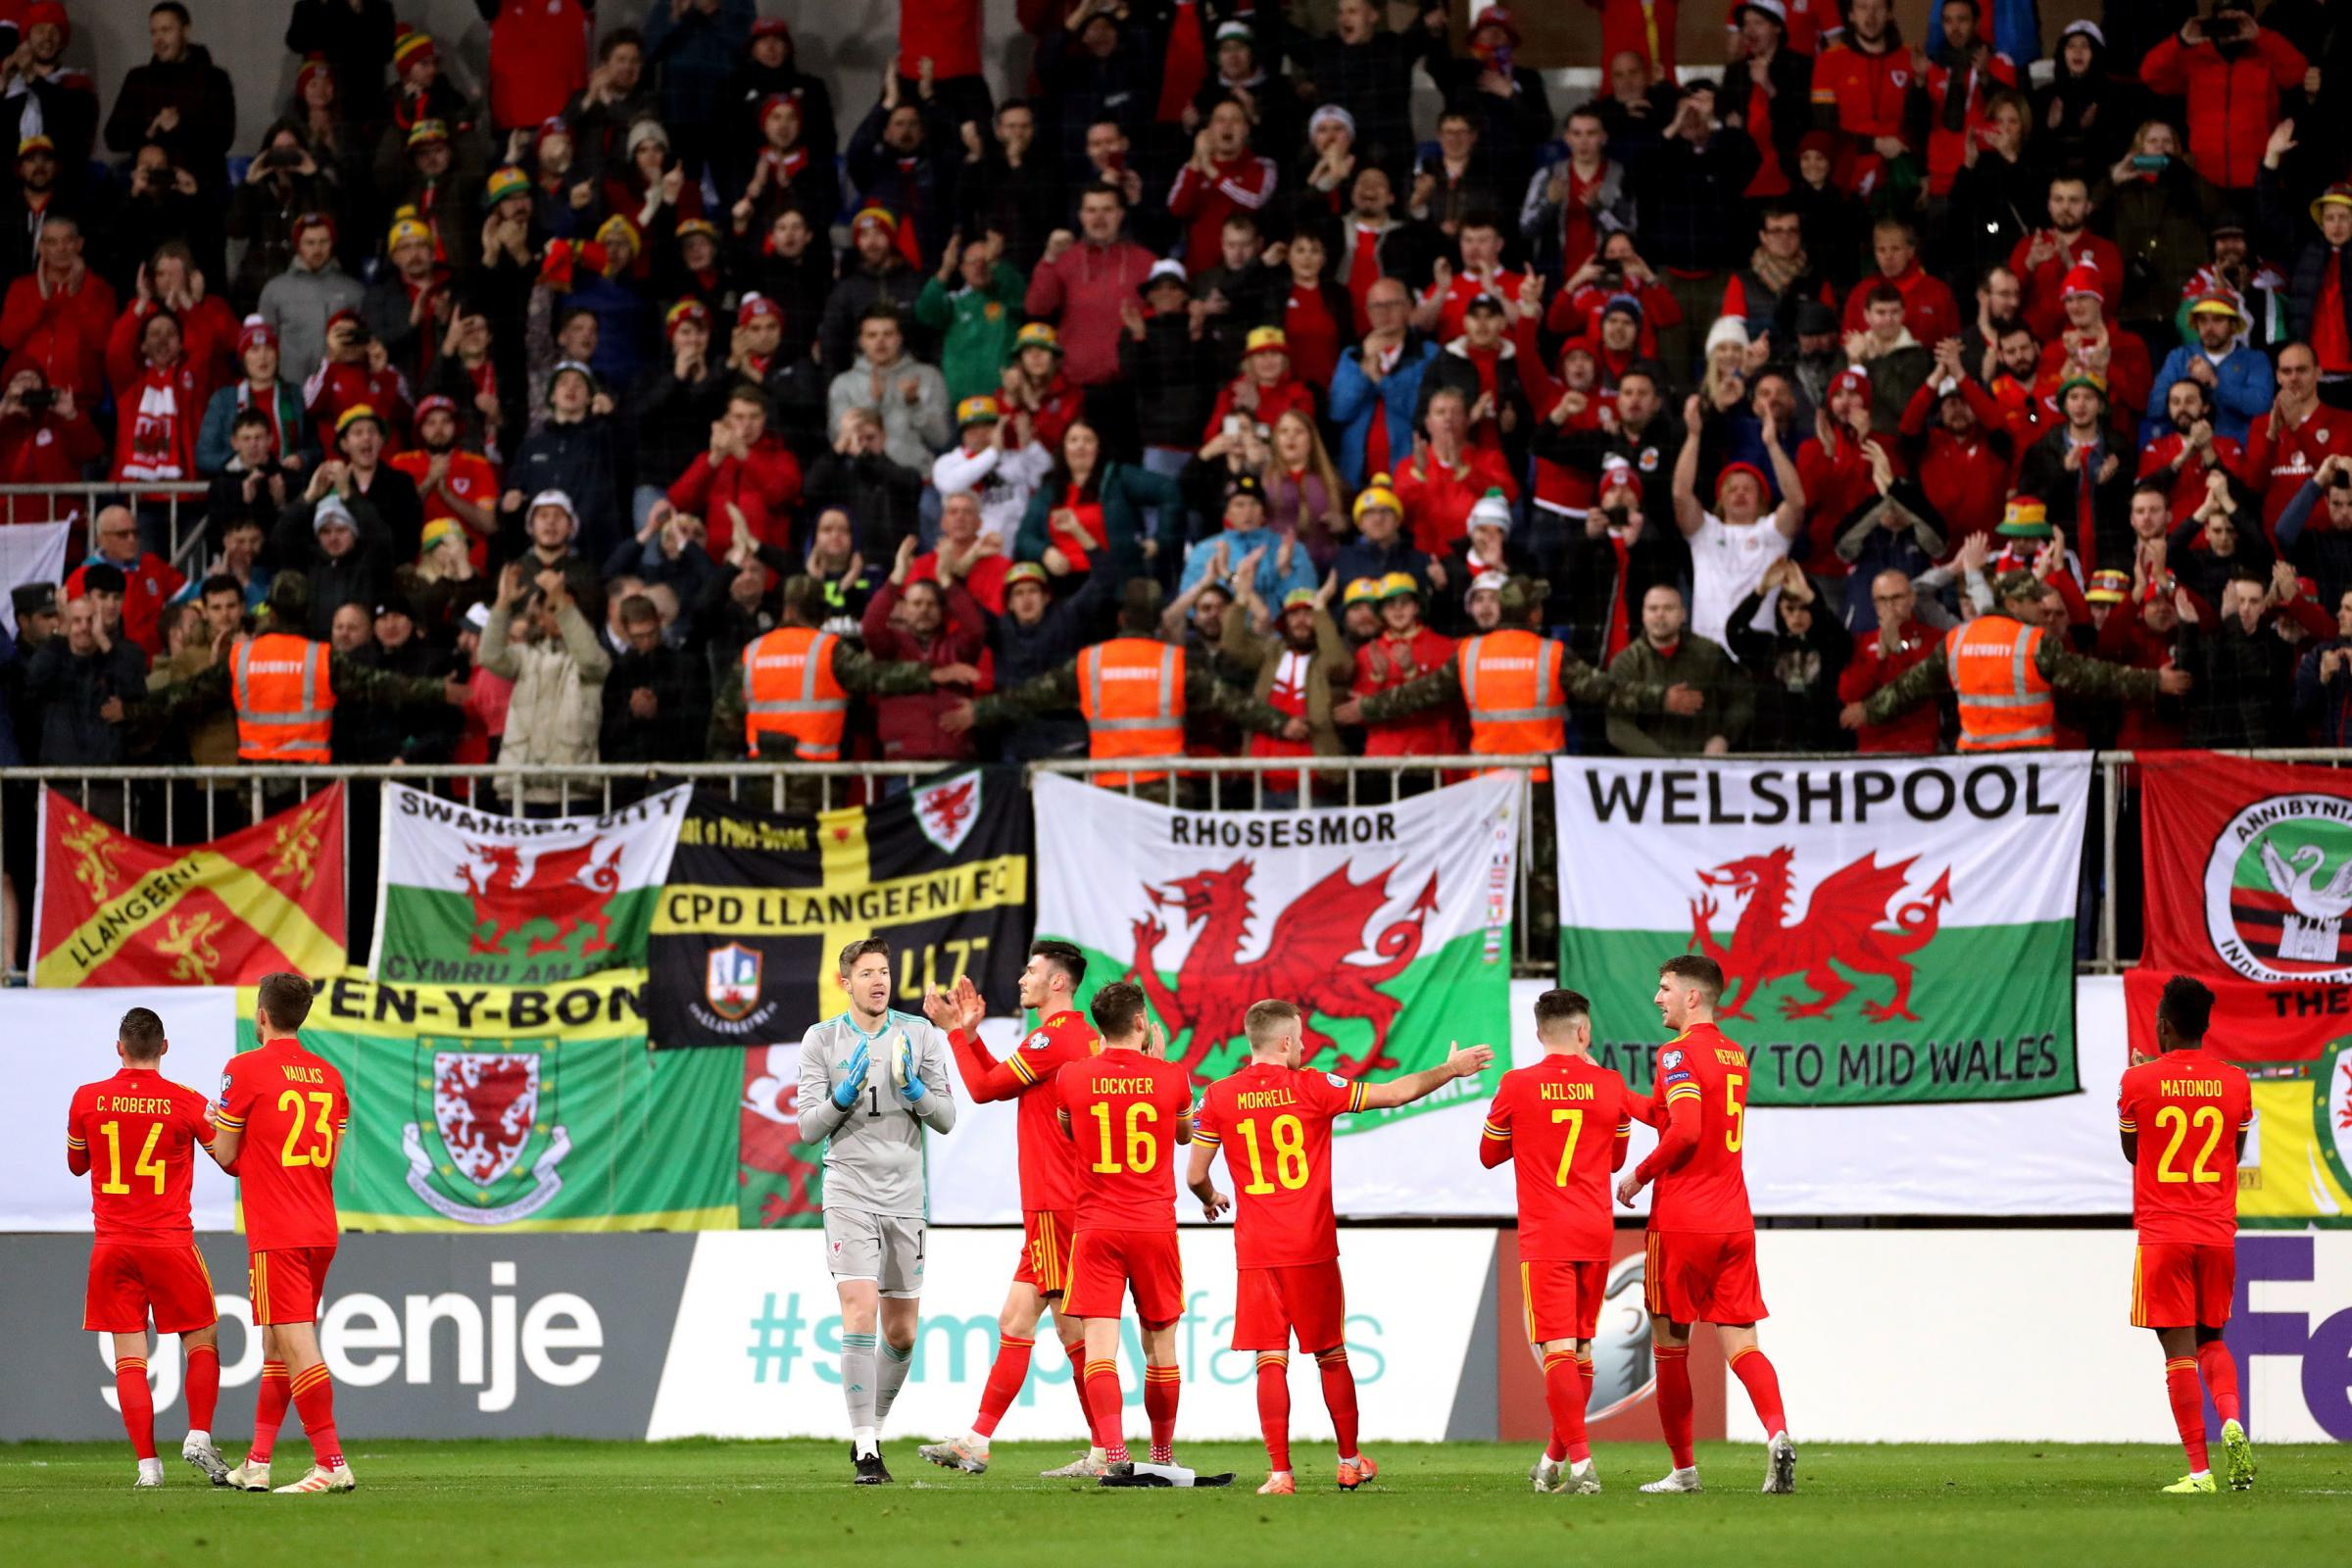 Wales football heroes applaud Welshpool fans as they march on in Euro 2020 - Powys County Times